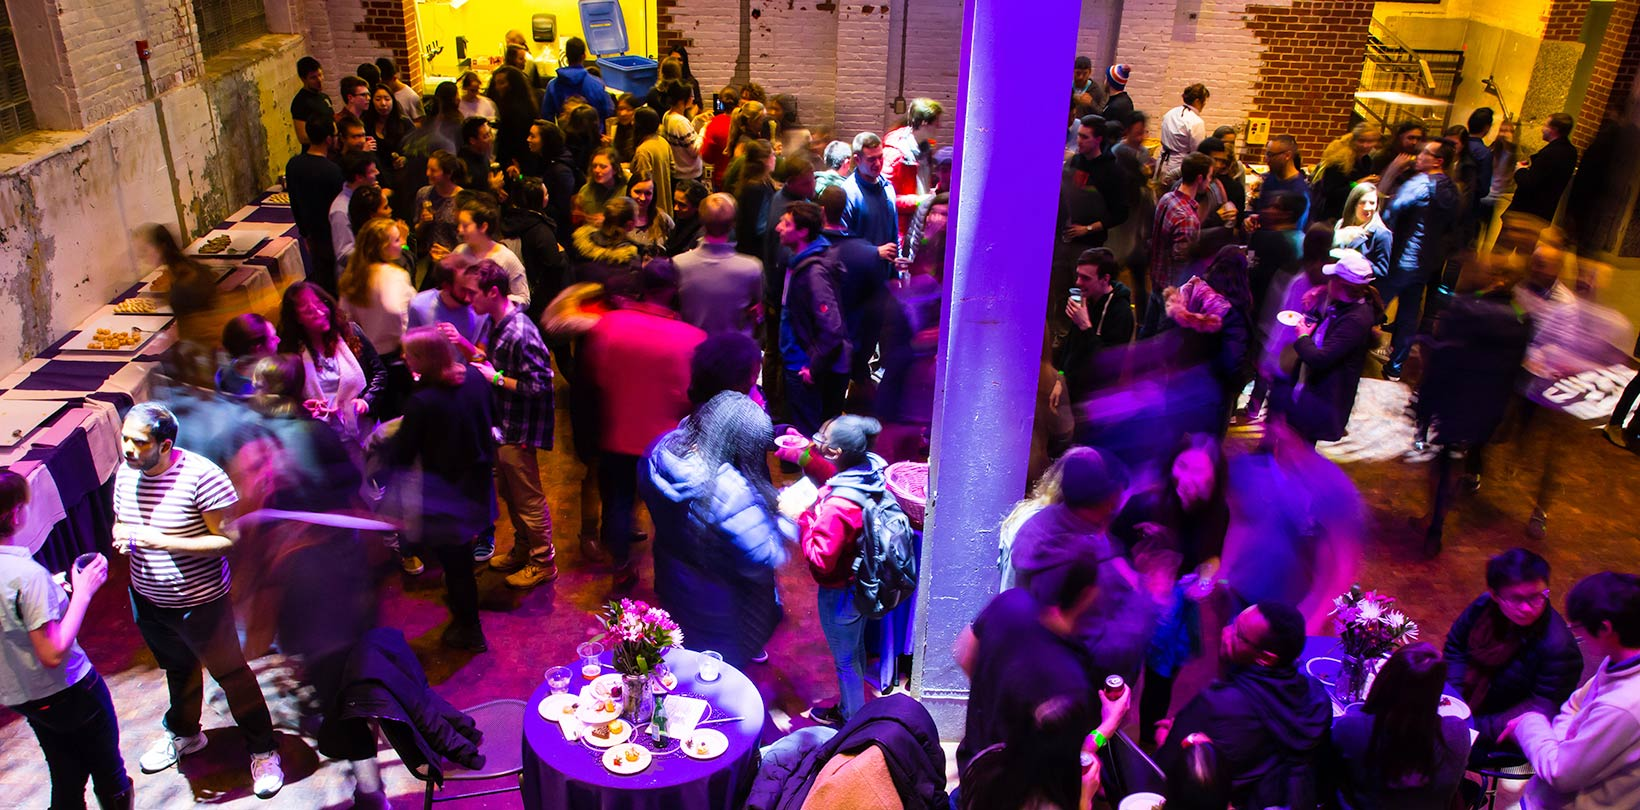 An event taking place in the Powerhouse at Amherst College